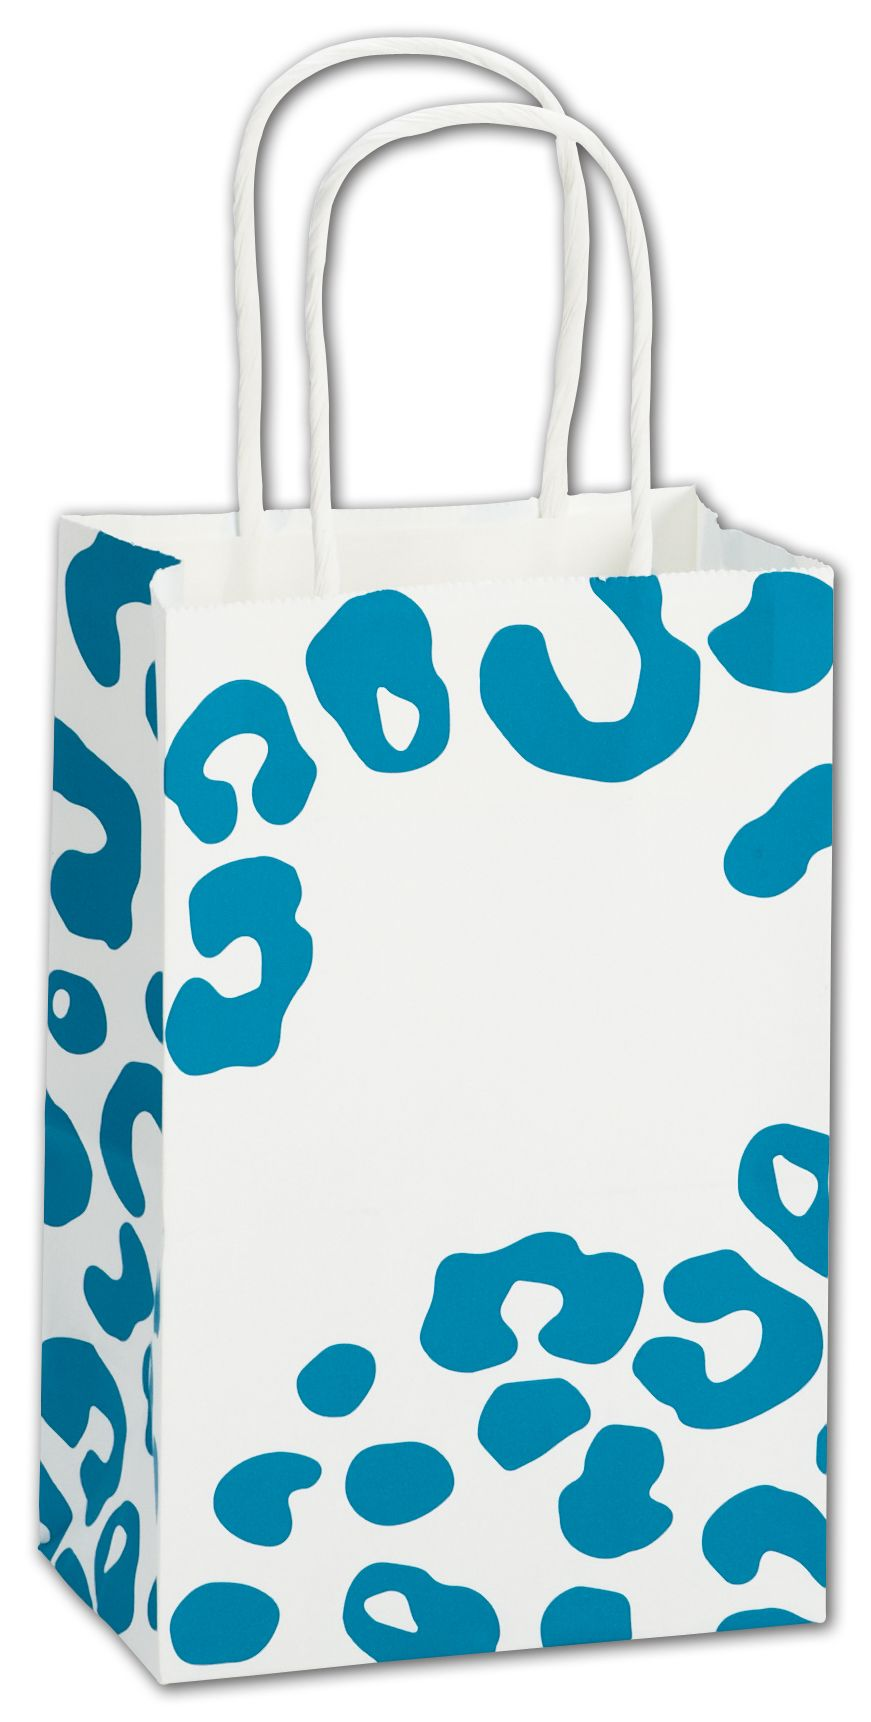 This sturdy Paper Shopping Bag with a  Turquoise ah Print makes wrapping or gift giving fun.